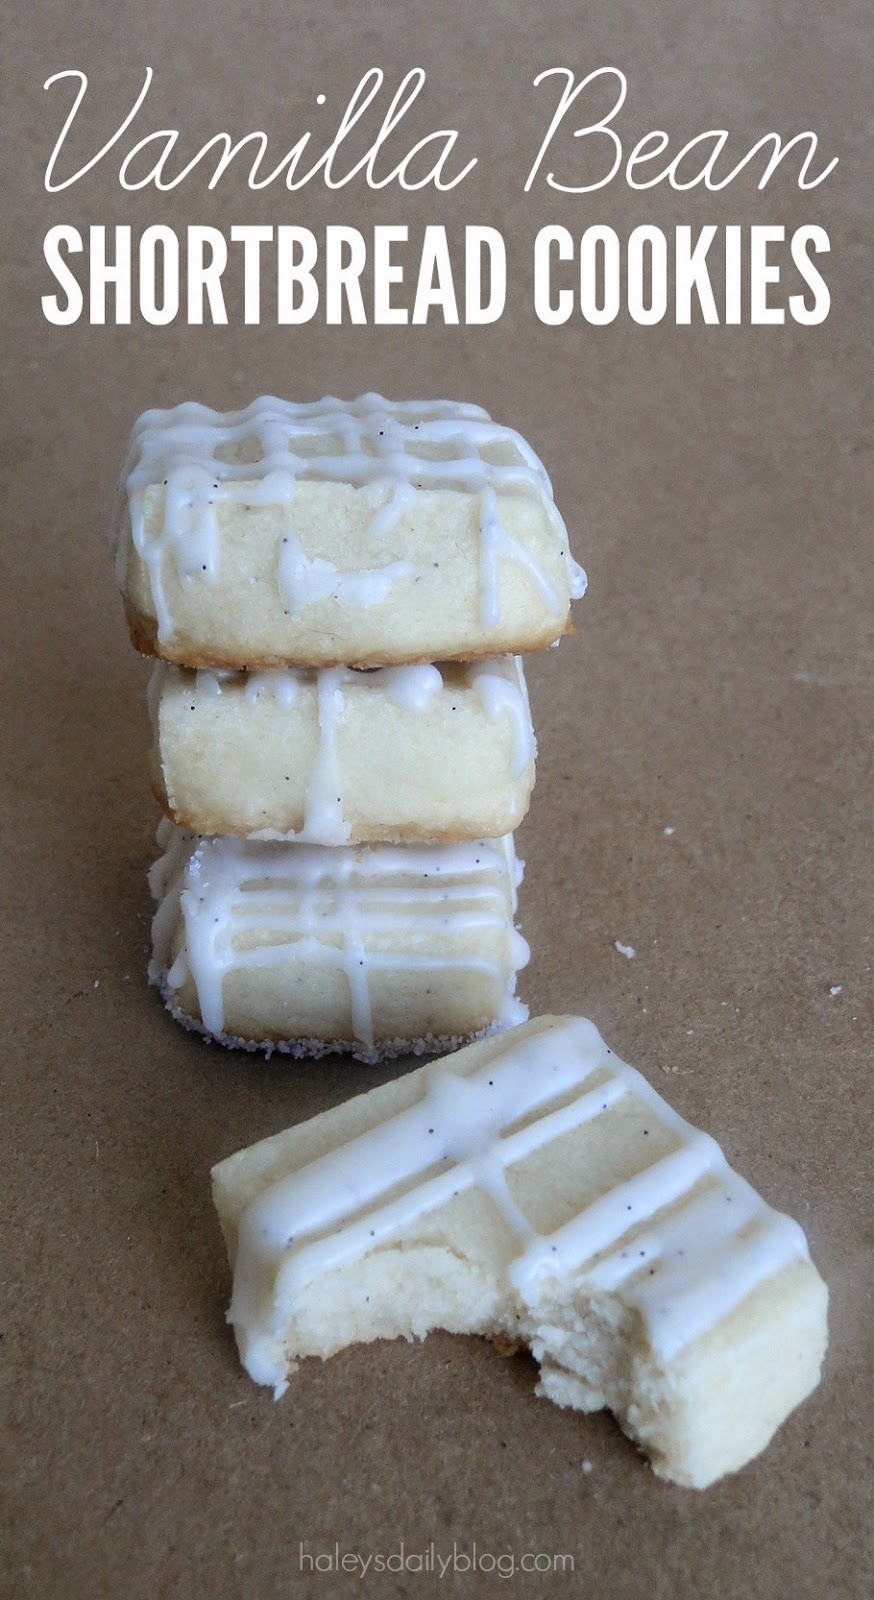 Haley's Daily Blog: Vanilla Bean Shortbread Cookies